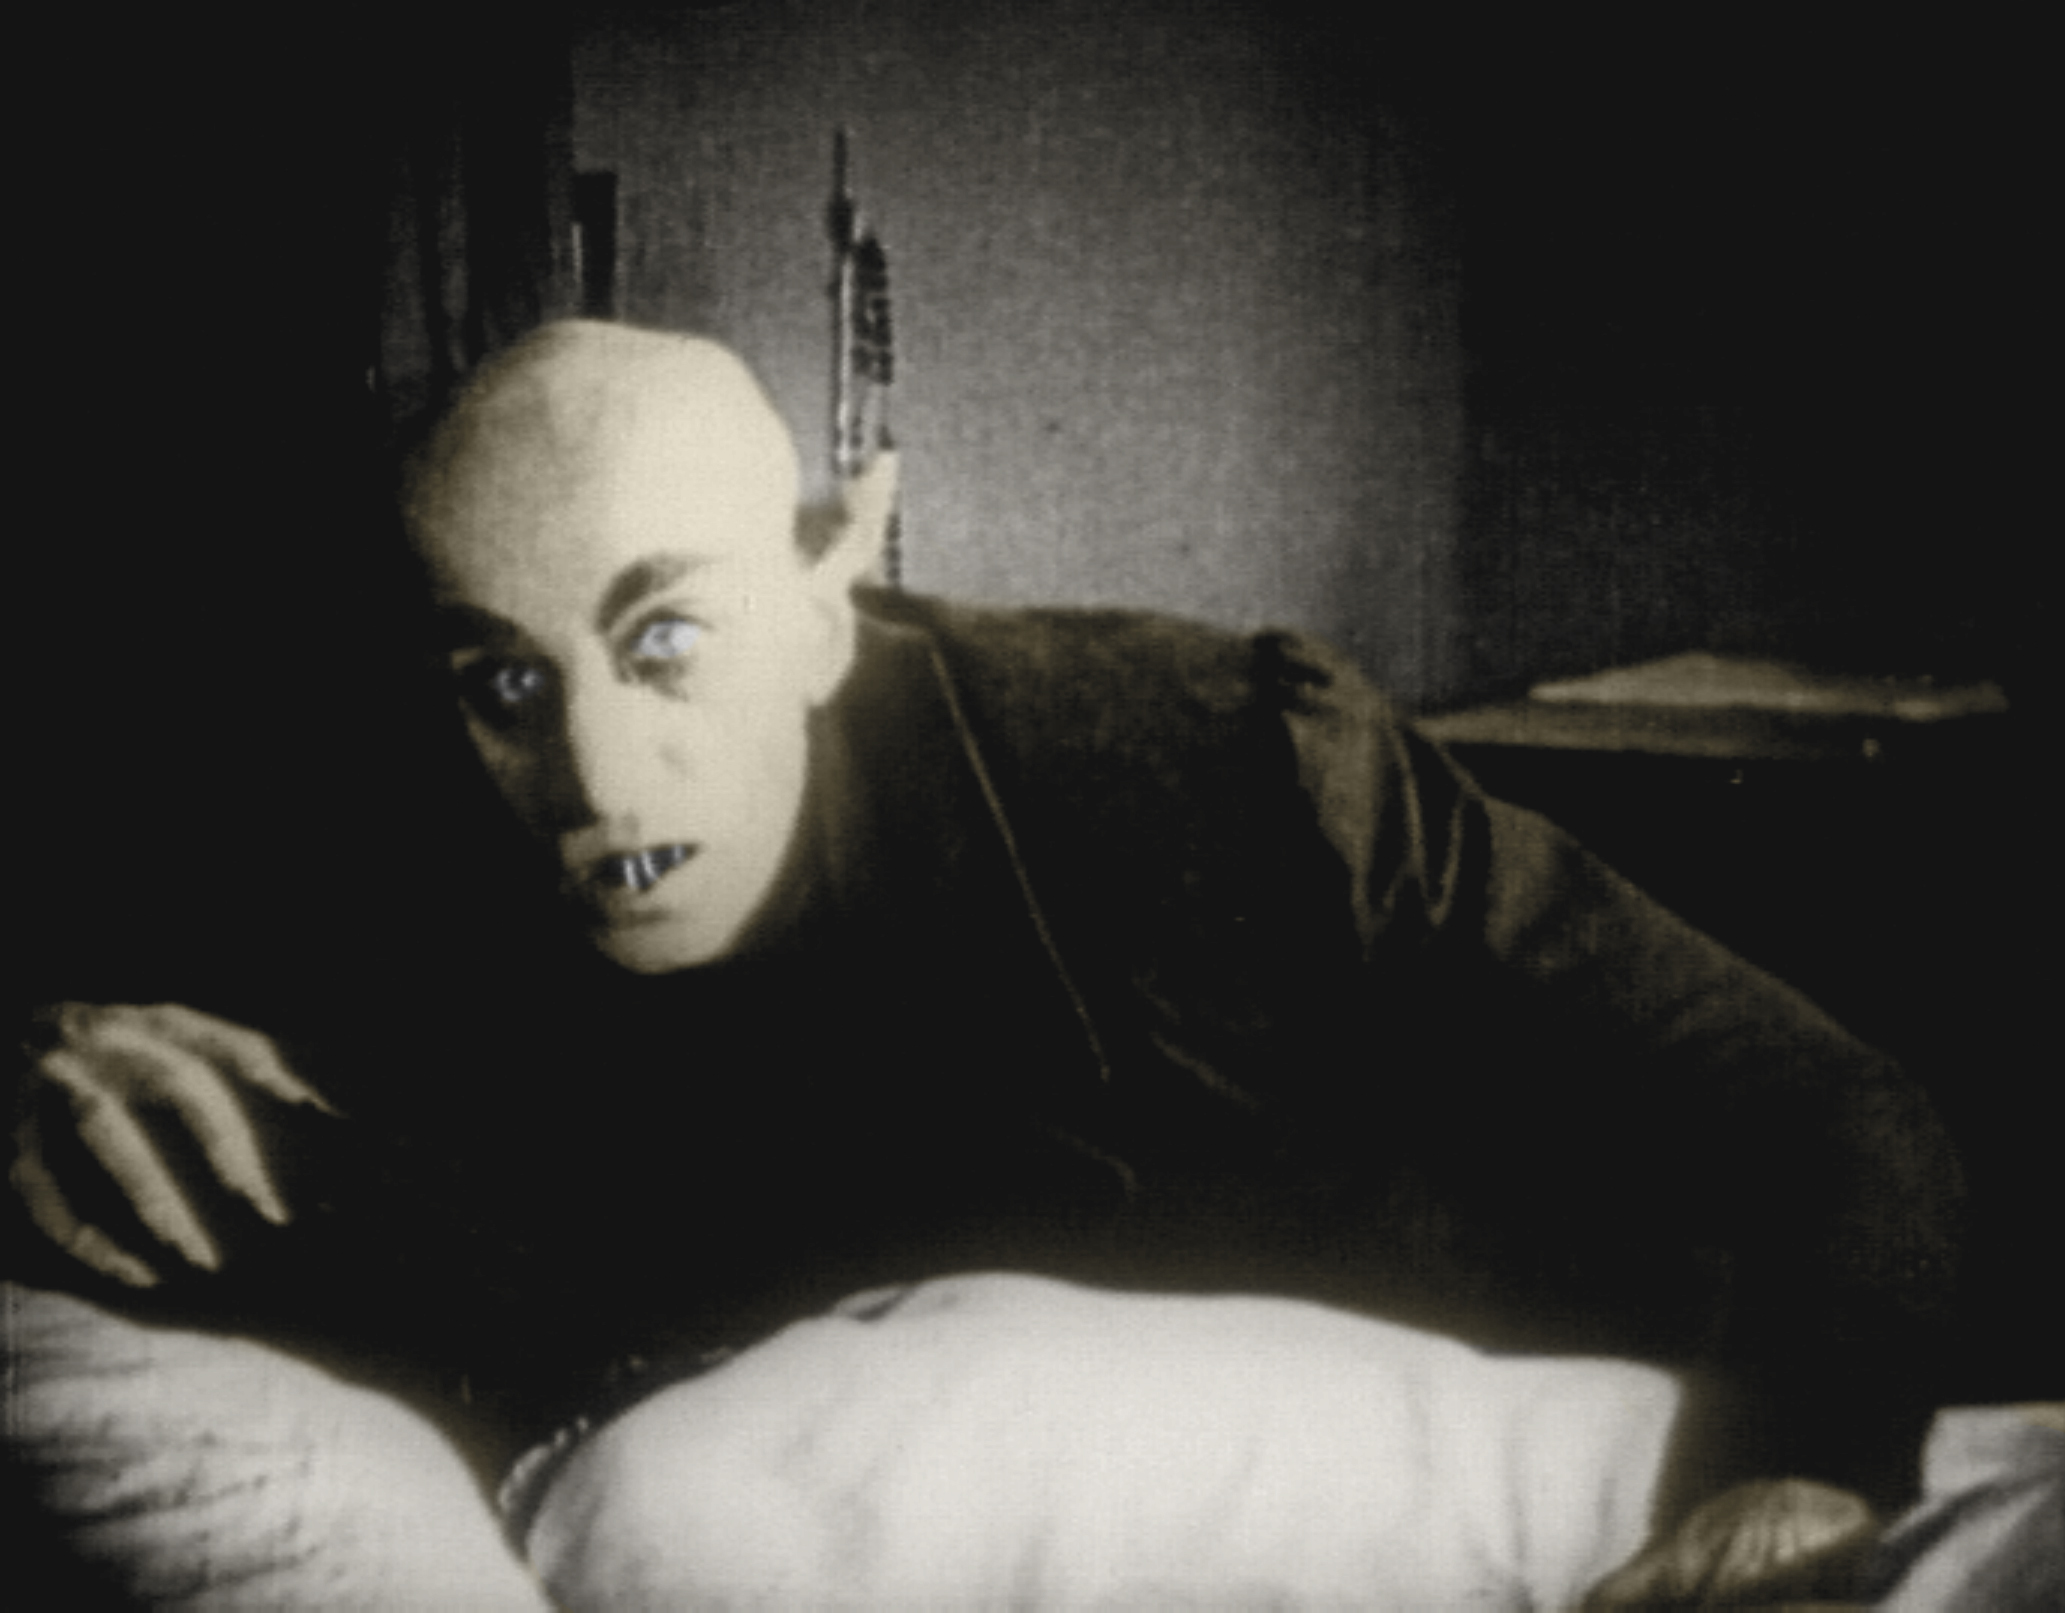 an analysis of the movie nosferatu Fw murnau, his films, and their influence on german expressionism by katherine nosferatu, based on the novel an analysis of film critic andre bazin's views.